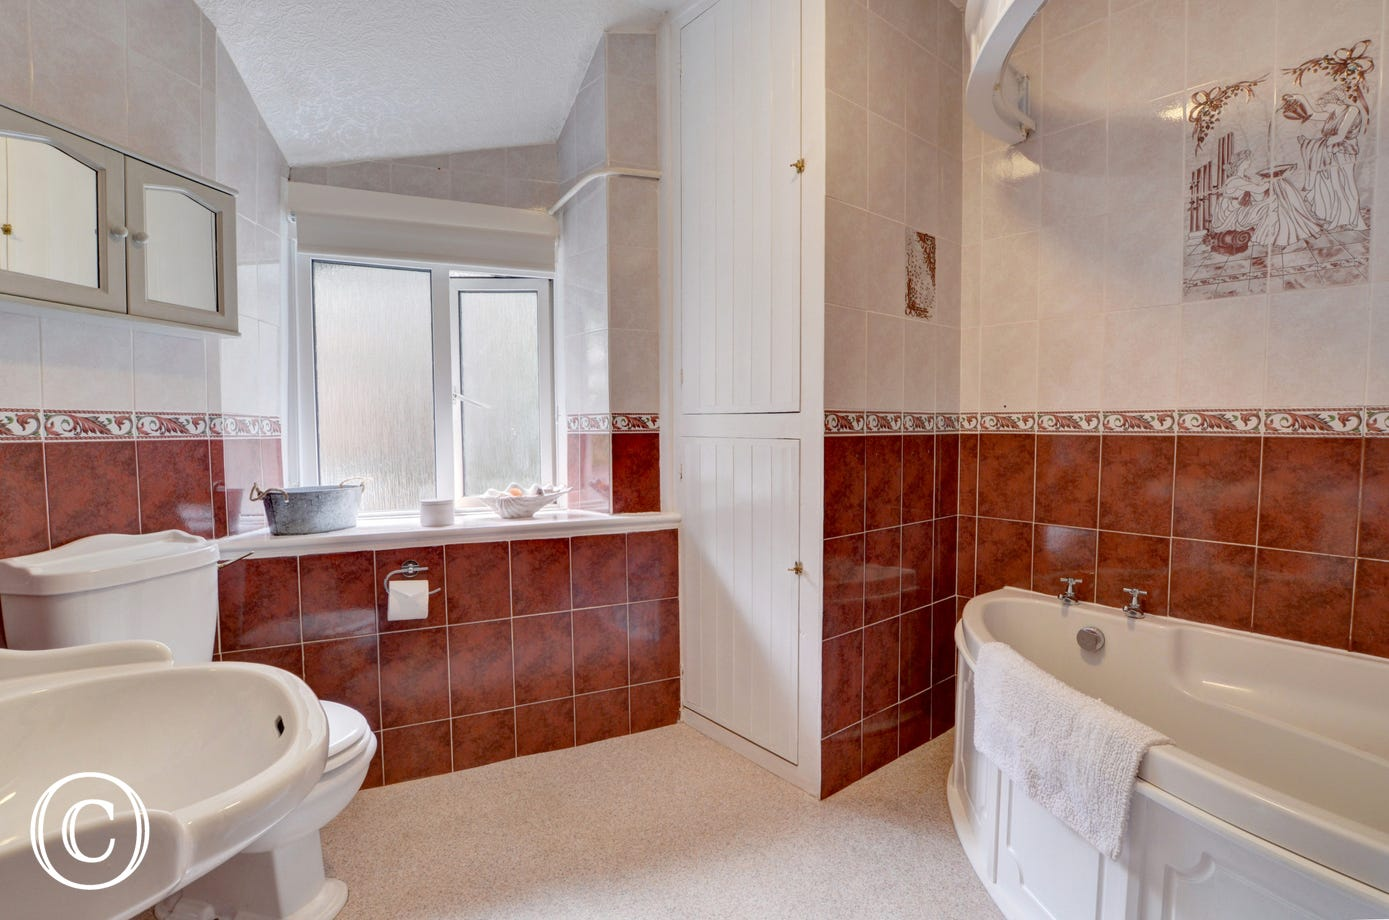 A large bathroom with corner bath and electric shower completes the accommodation